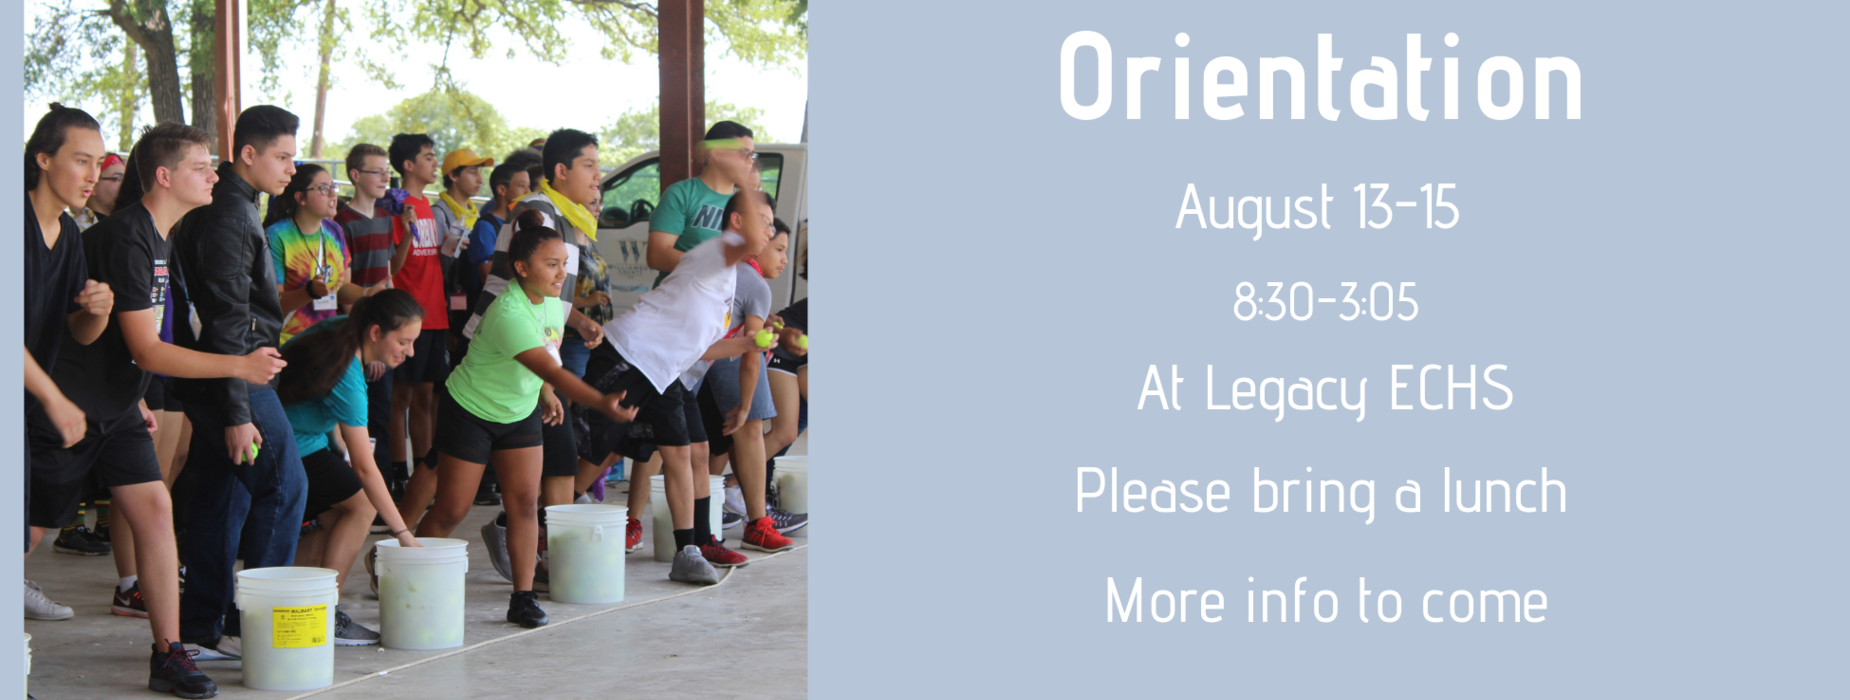 New Student Orientation 8/13-8/15